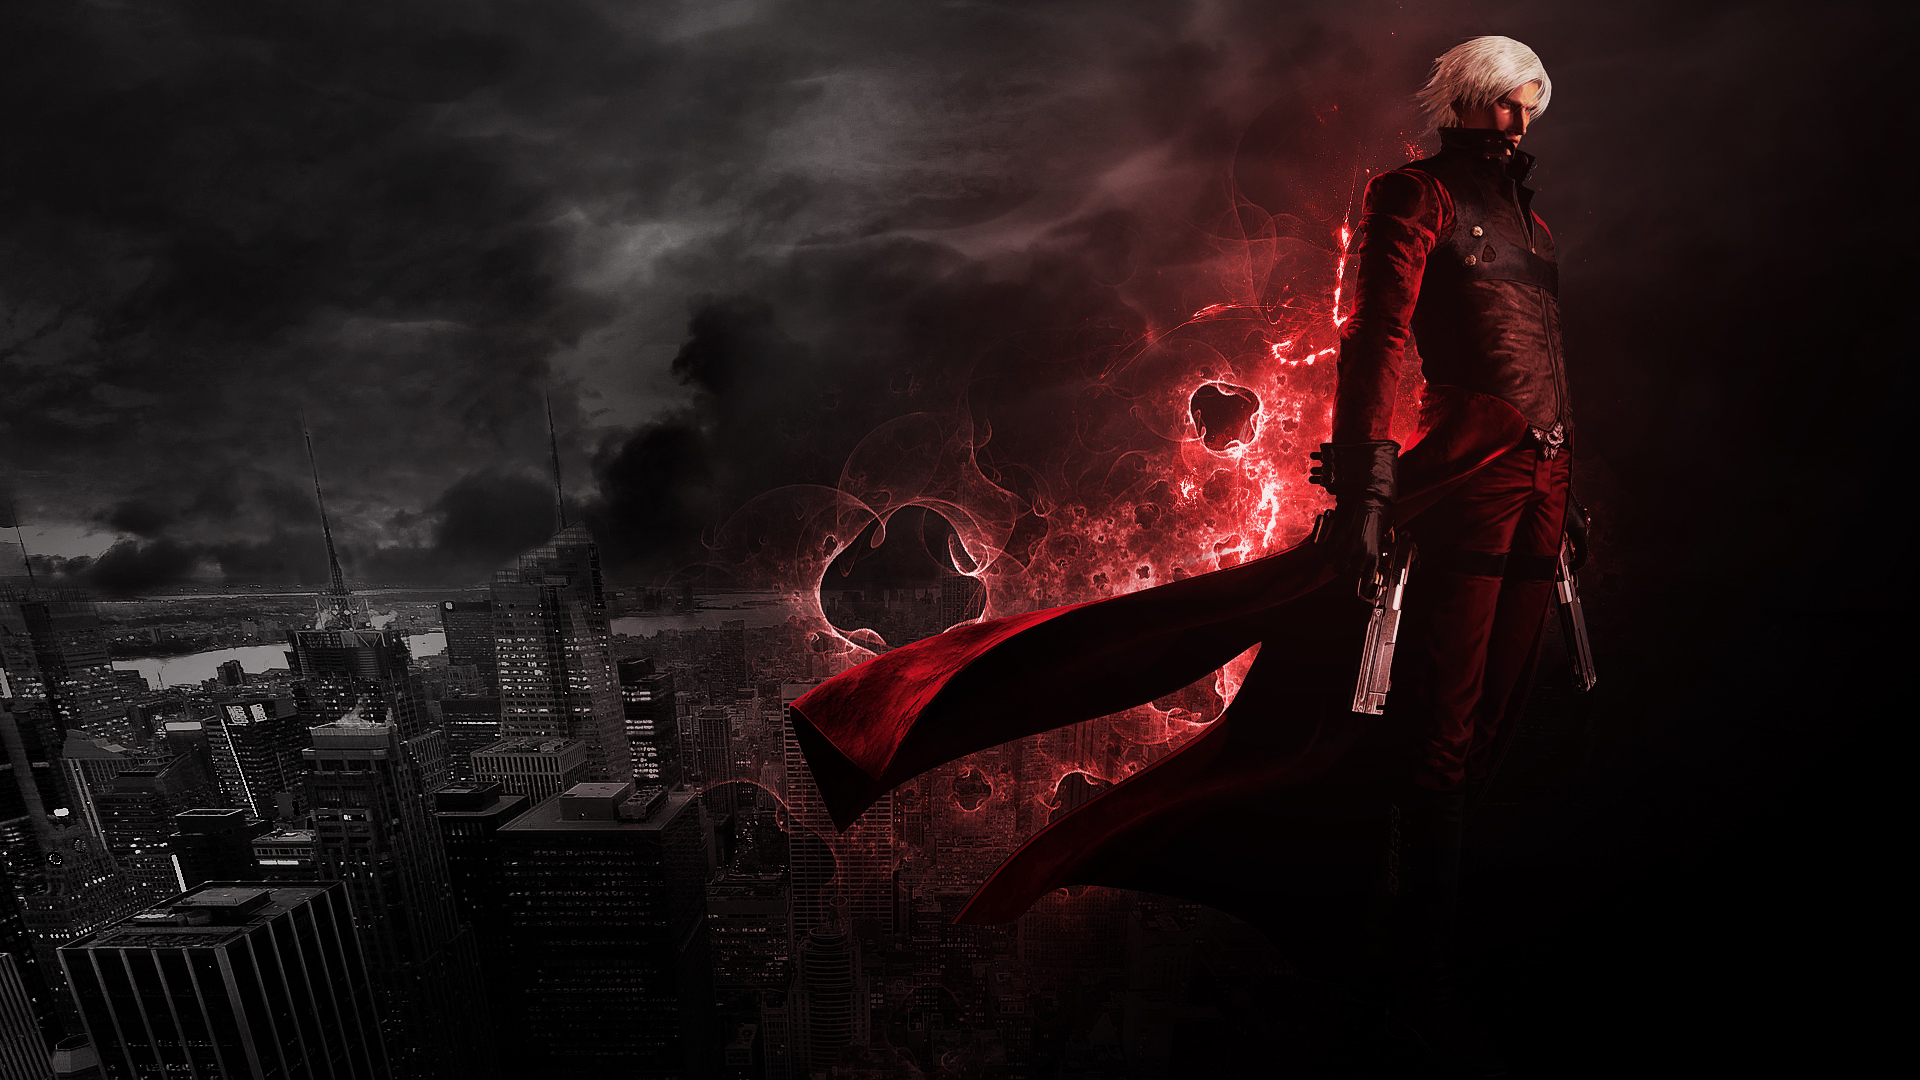 Free wallpapers hd wallpapers desktop wallpapers devil may cry 2 dante - Devil may cry hd pics ...